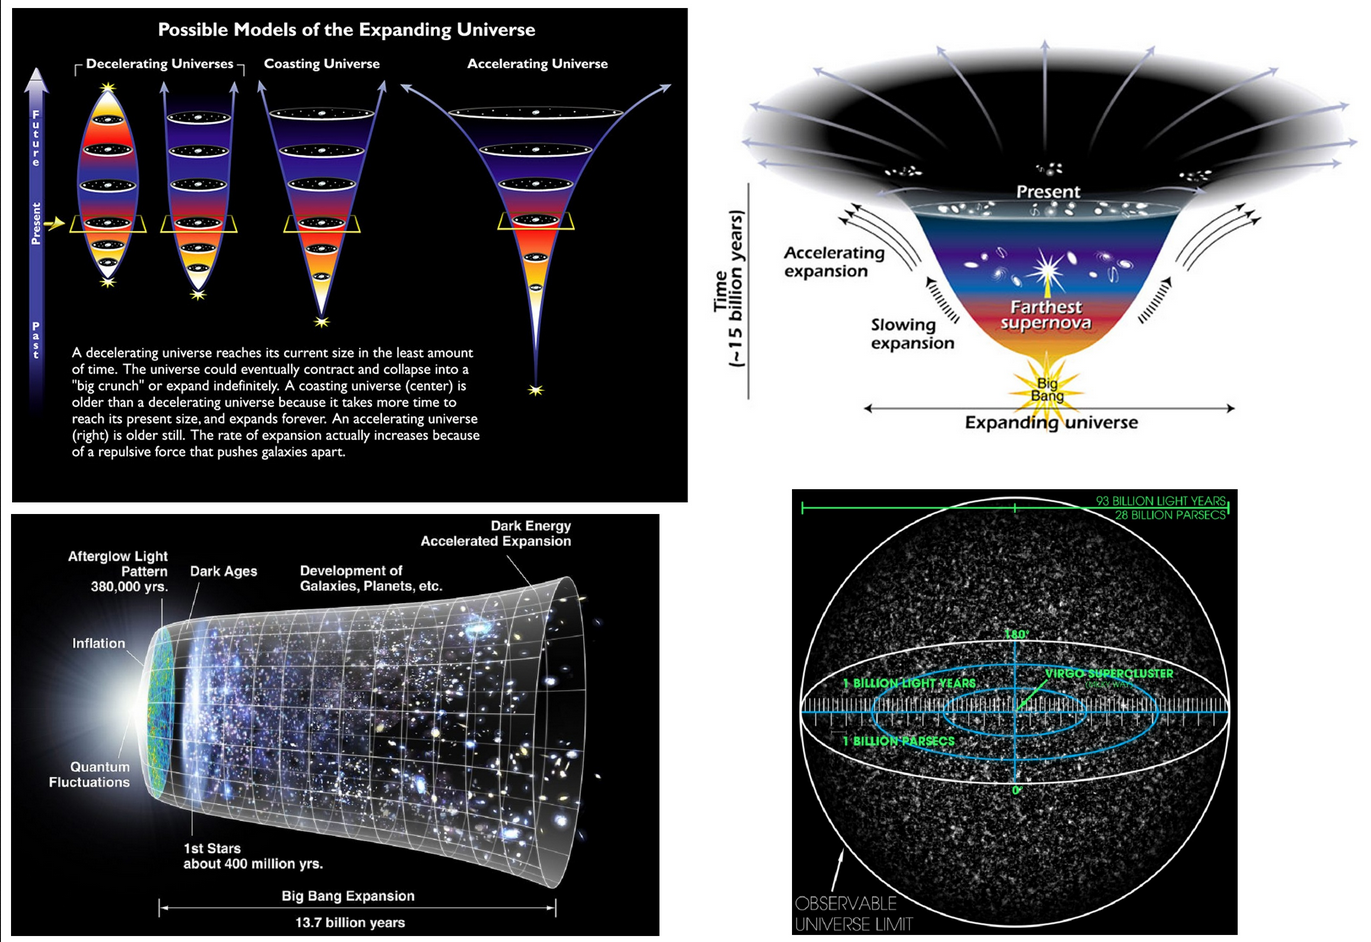 Possible Models of the Expanding Universe